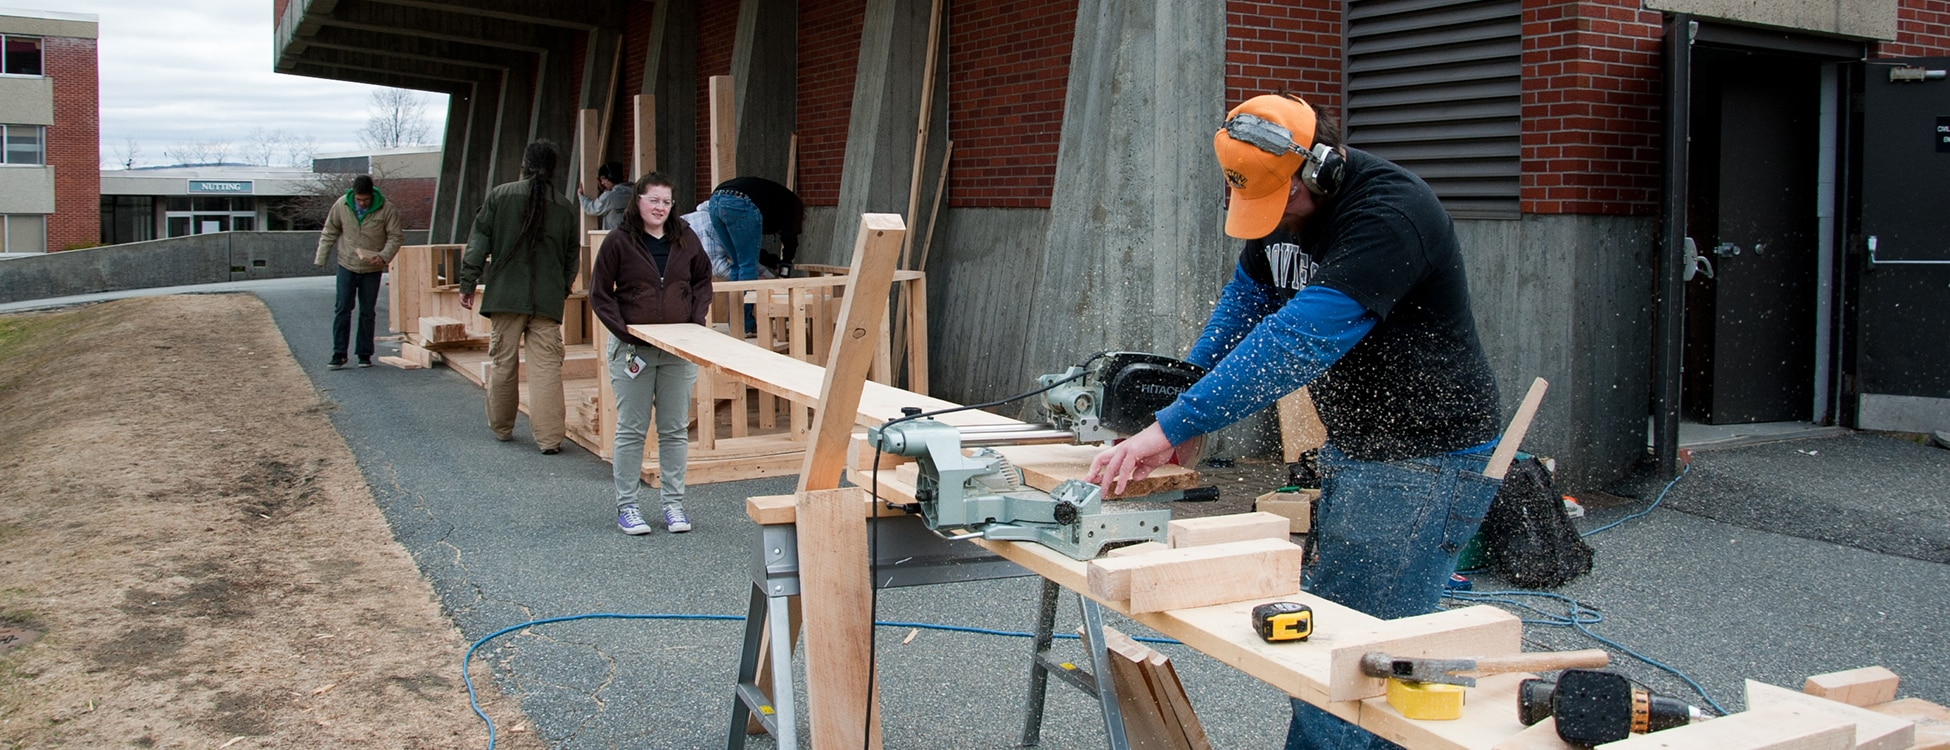 Students outside working, power saws